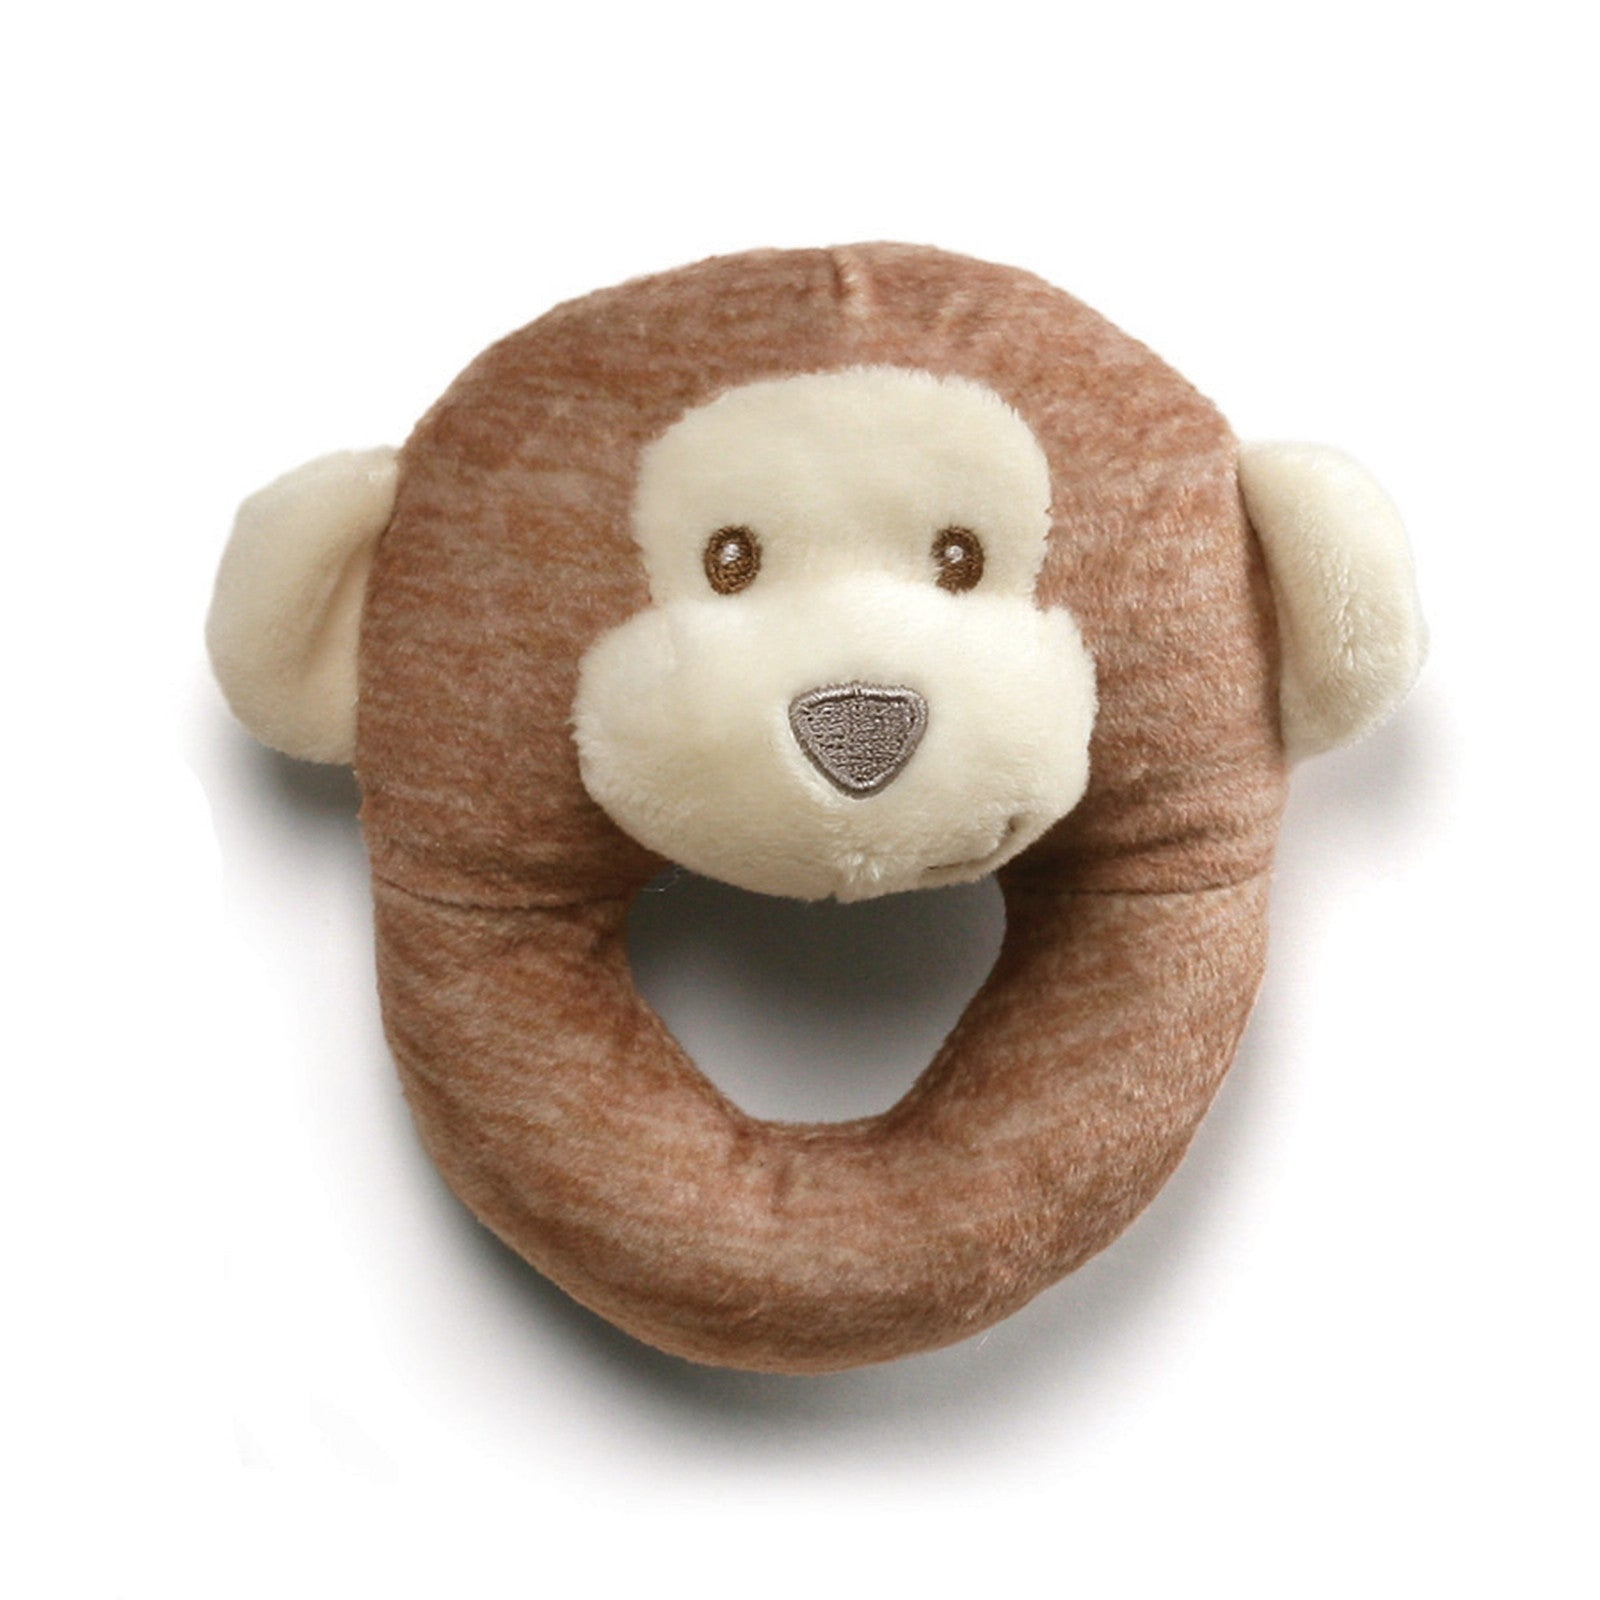 Baby Gund - Playful Pals Collection - Monkey Rattle